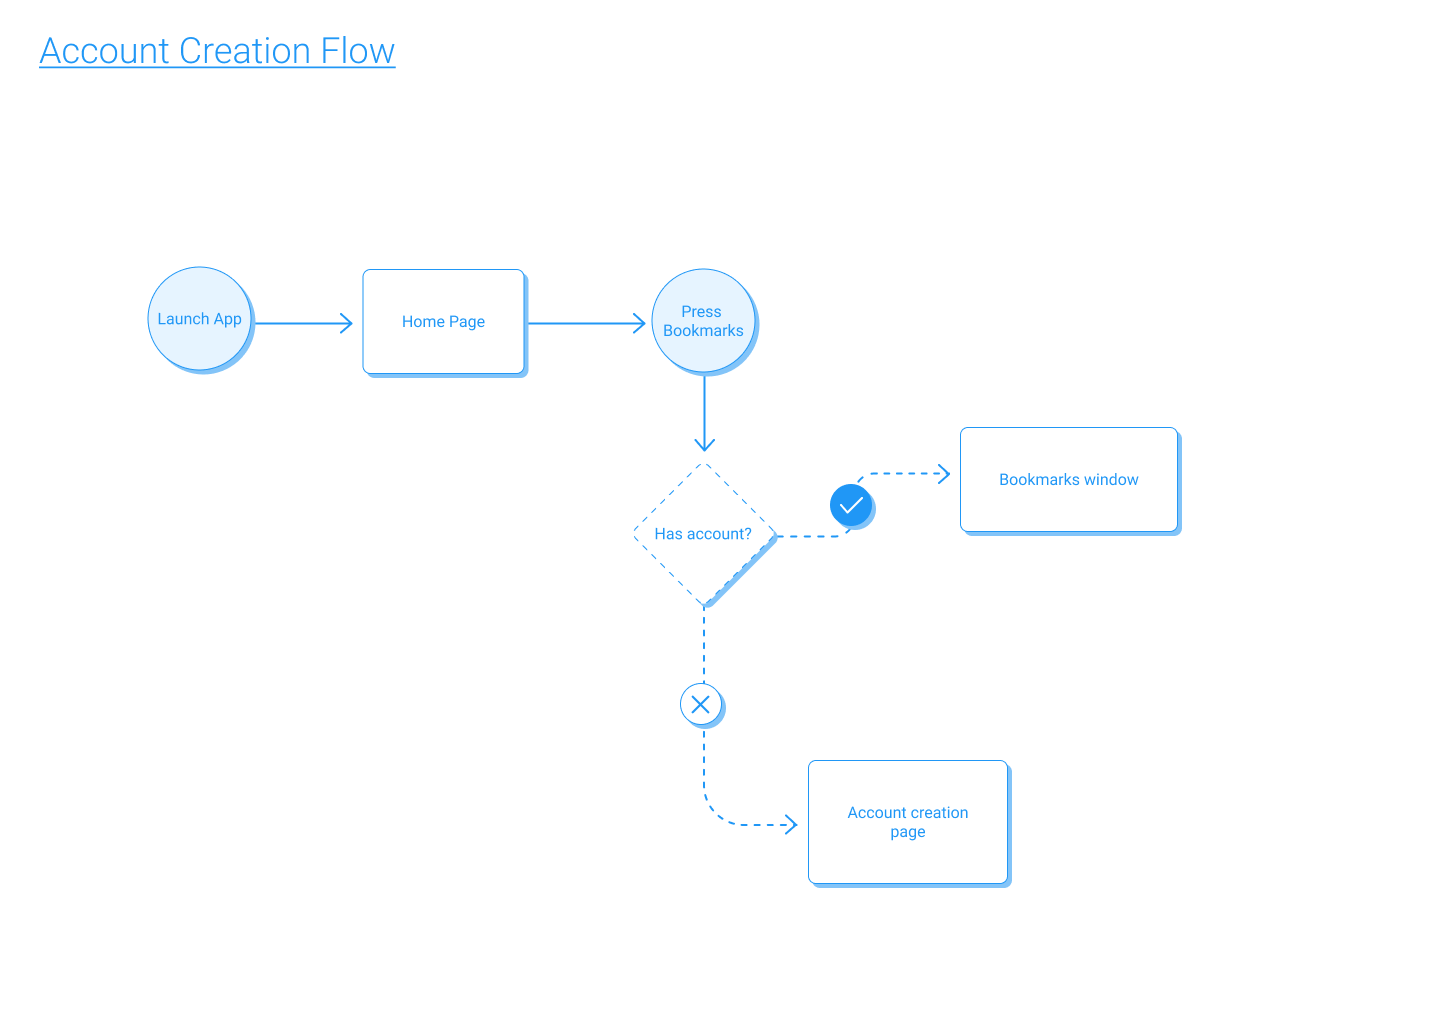 A diagram showing a user flow for a mobile app.